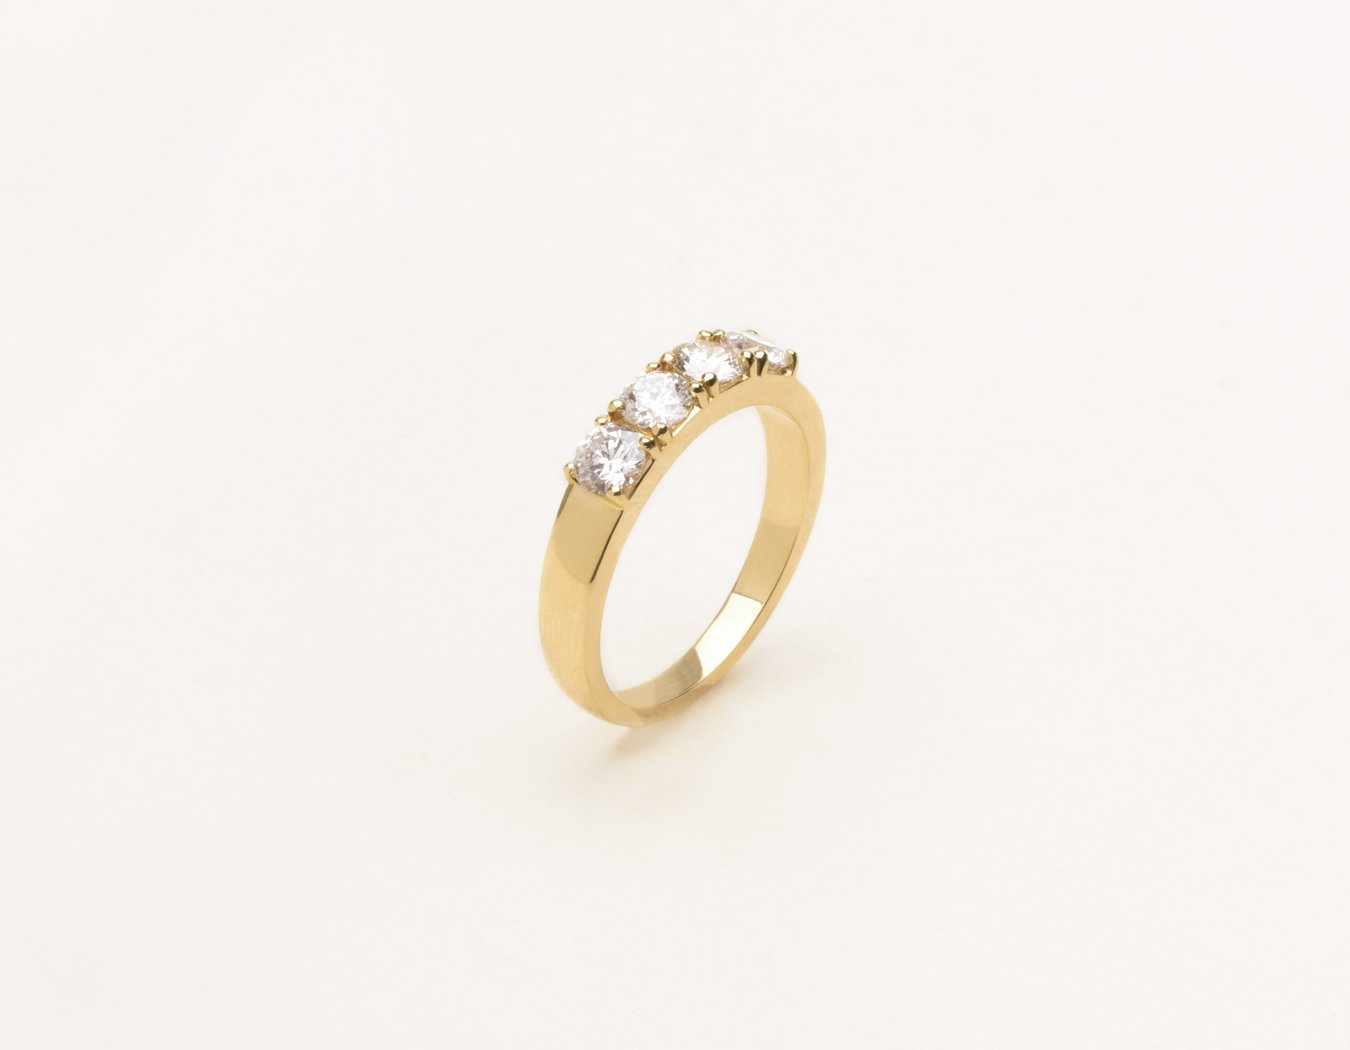 Simple elegant 14k solid gold Round Tetrad Band diamond ring by Vrai and Oro minimalist jewelry, 14K Yellow Gold